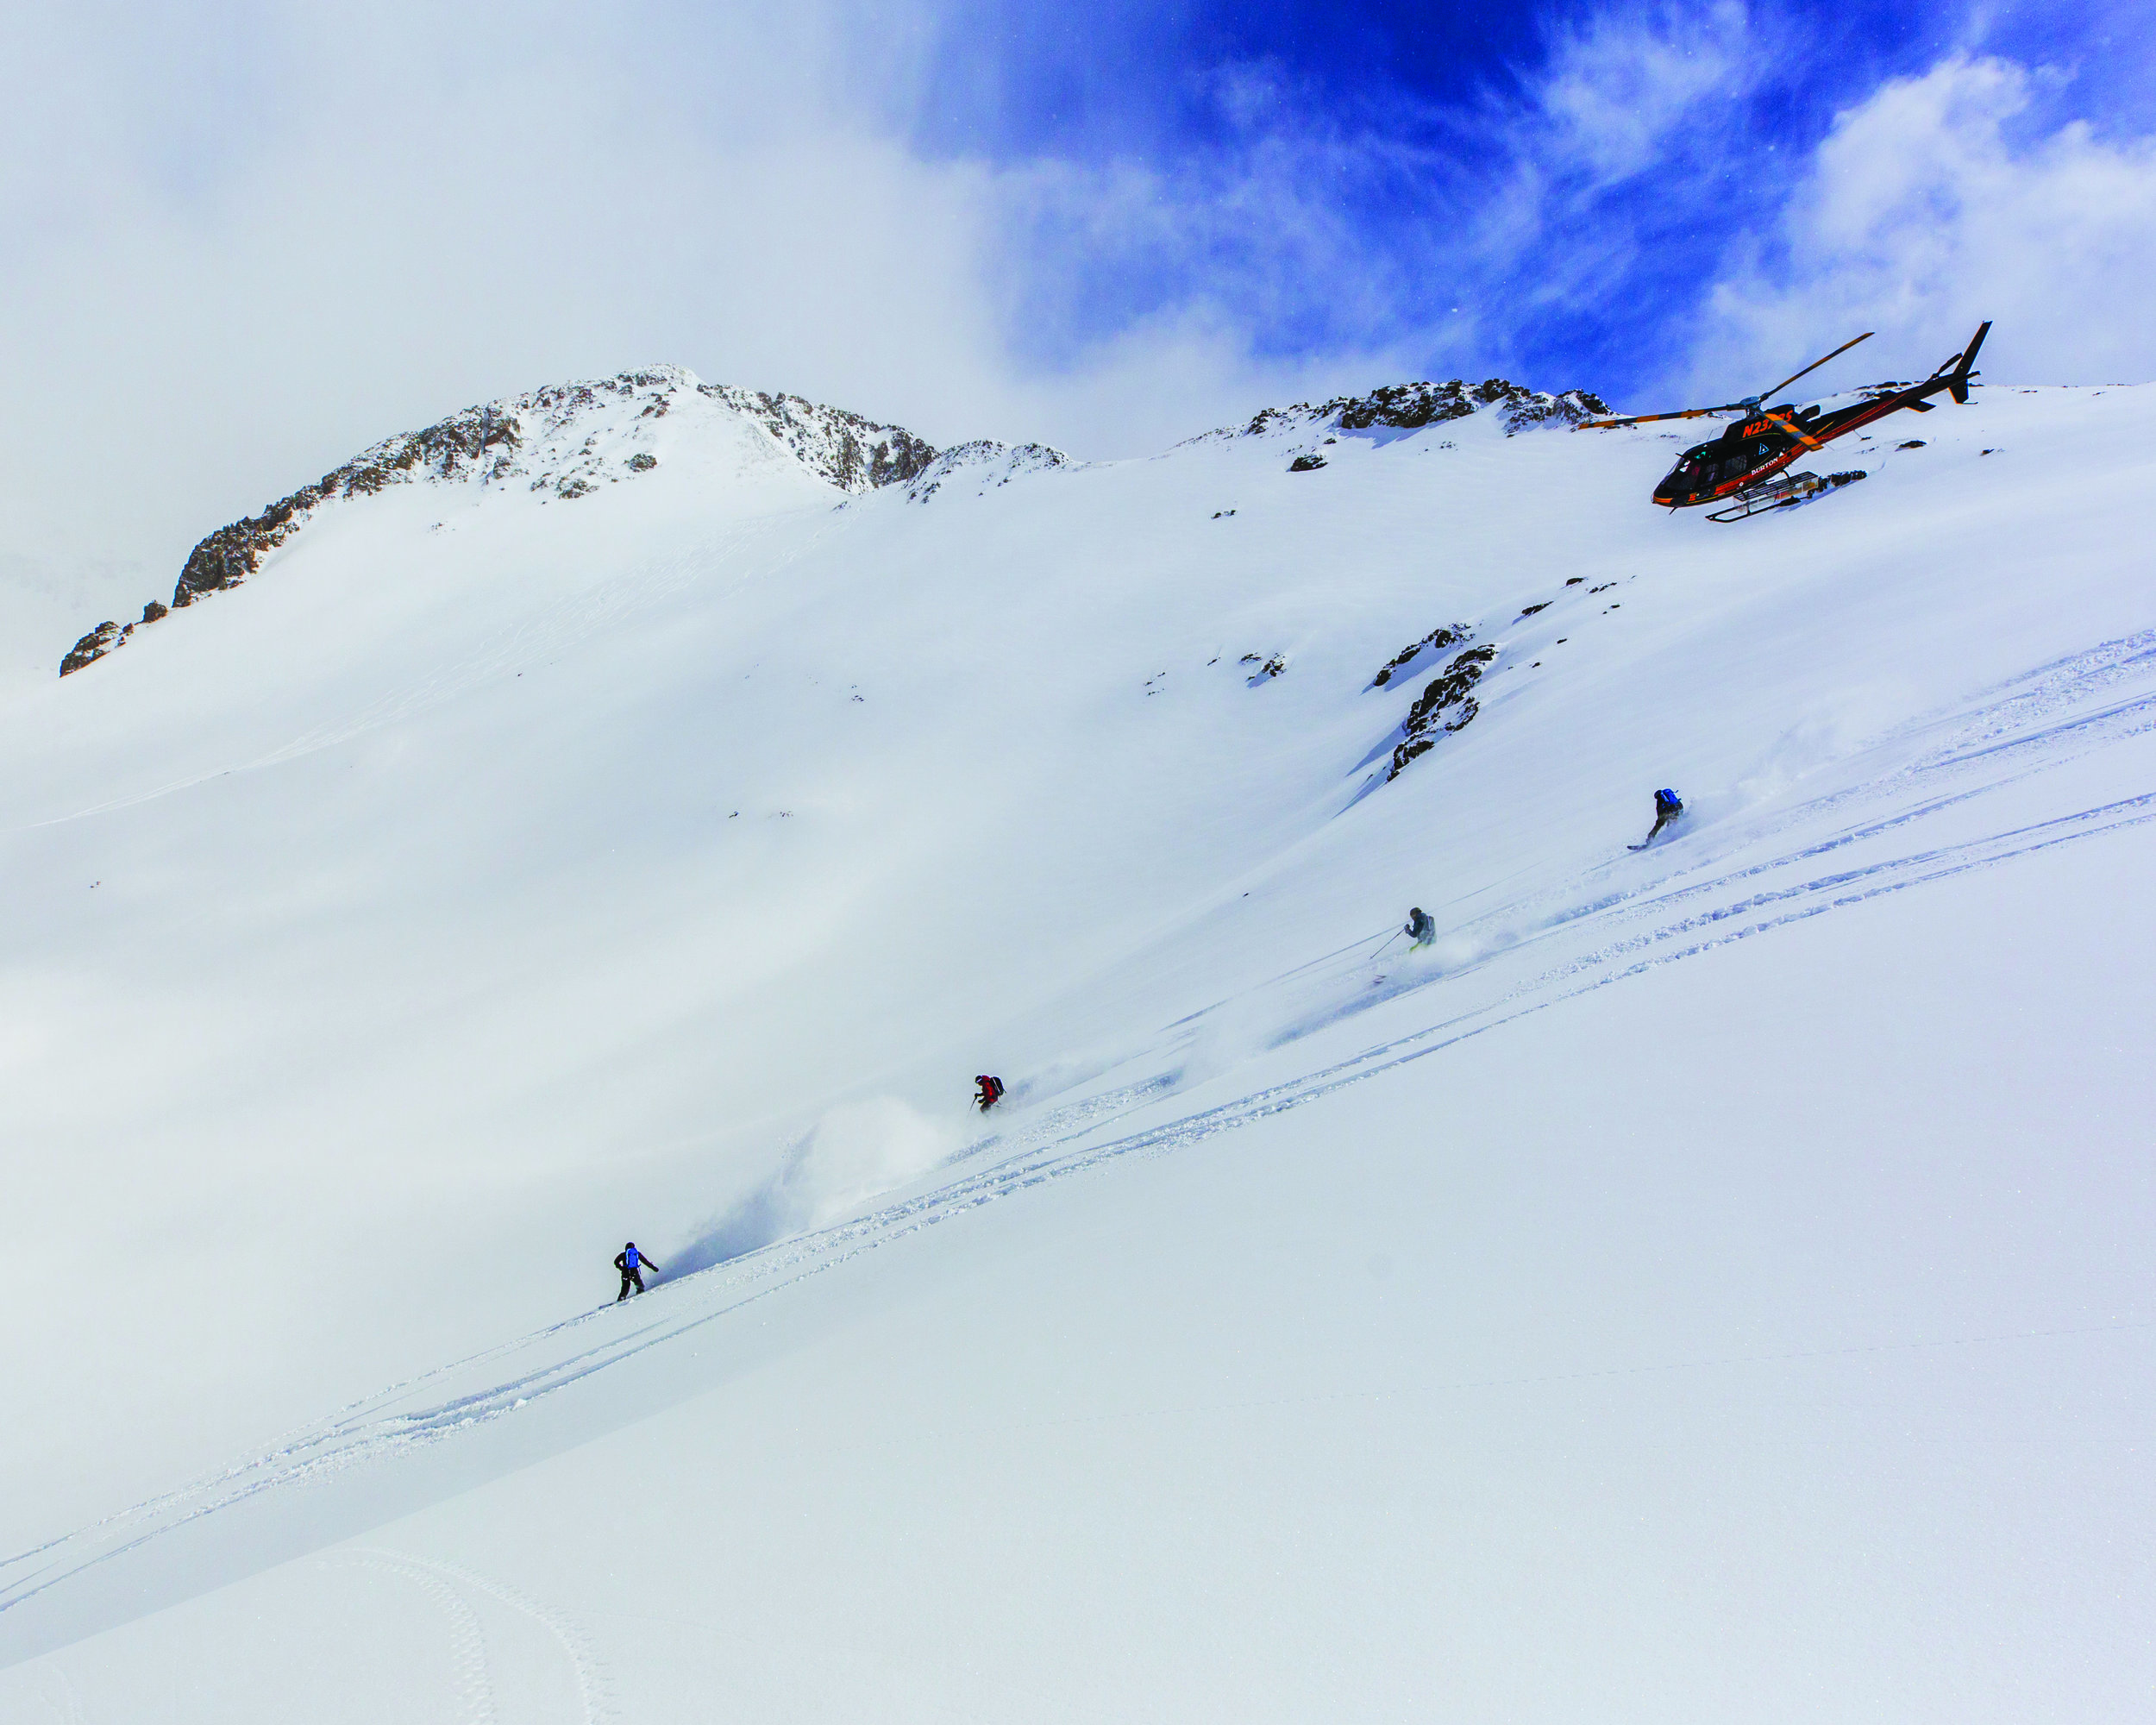 Telluride Helitrax drops skiers for a day in the powder. Photo: courtesy Telluride Helitrax.